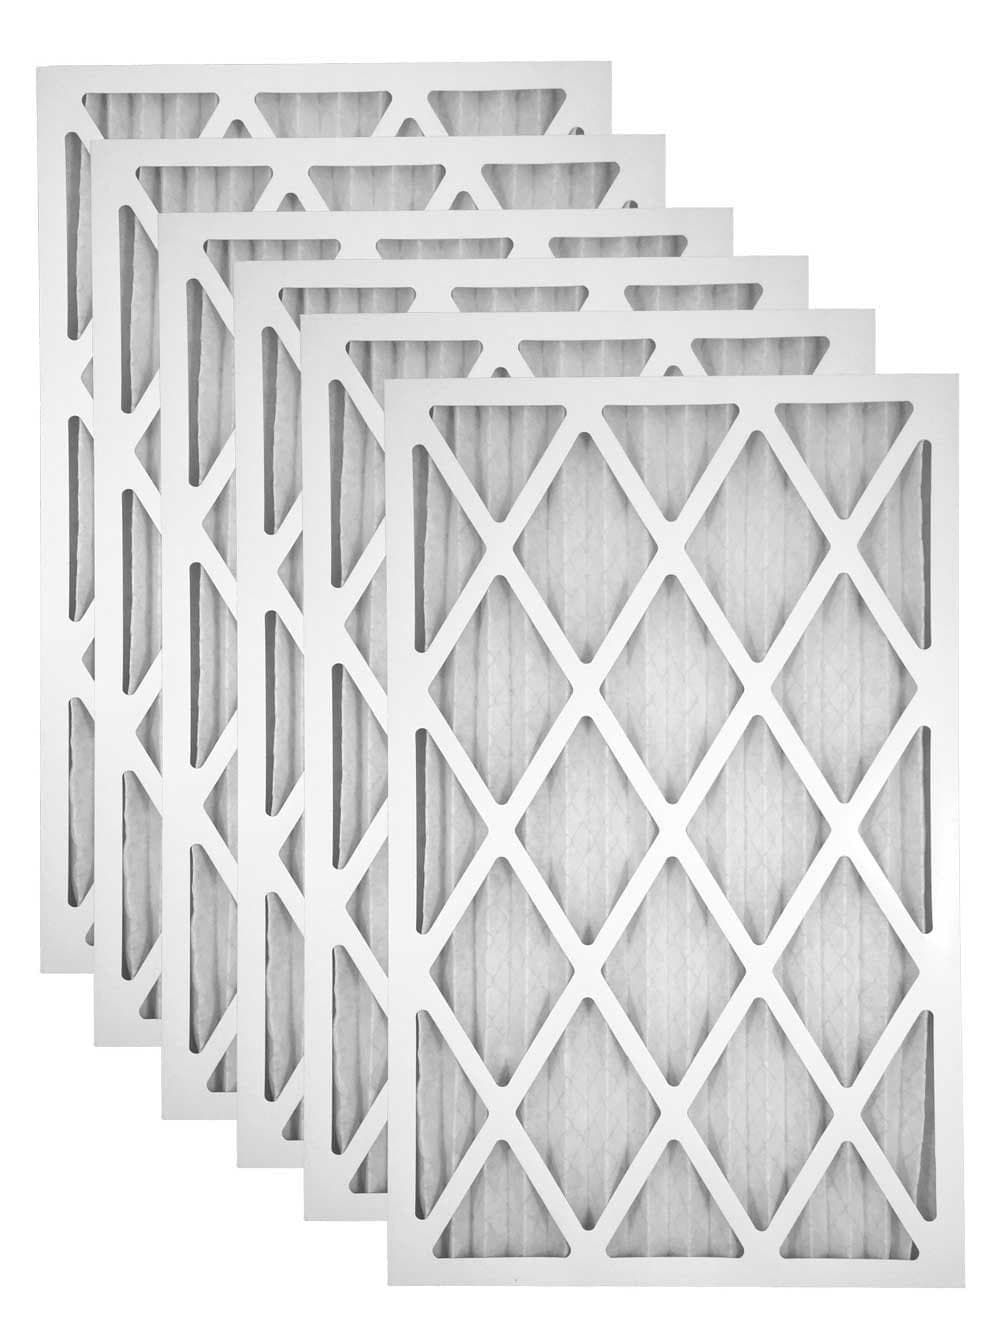 16x30x1 Merv 13 Pleated AC Furnace Filter - Case of 6